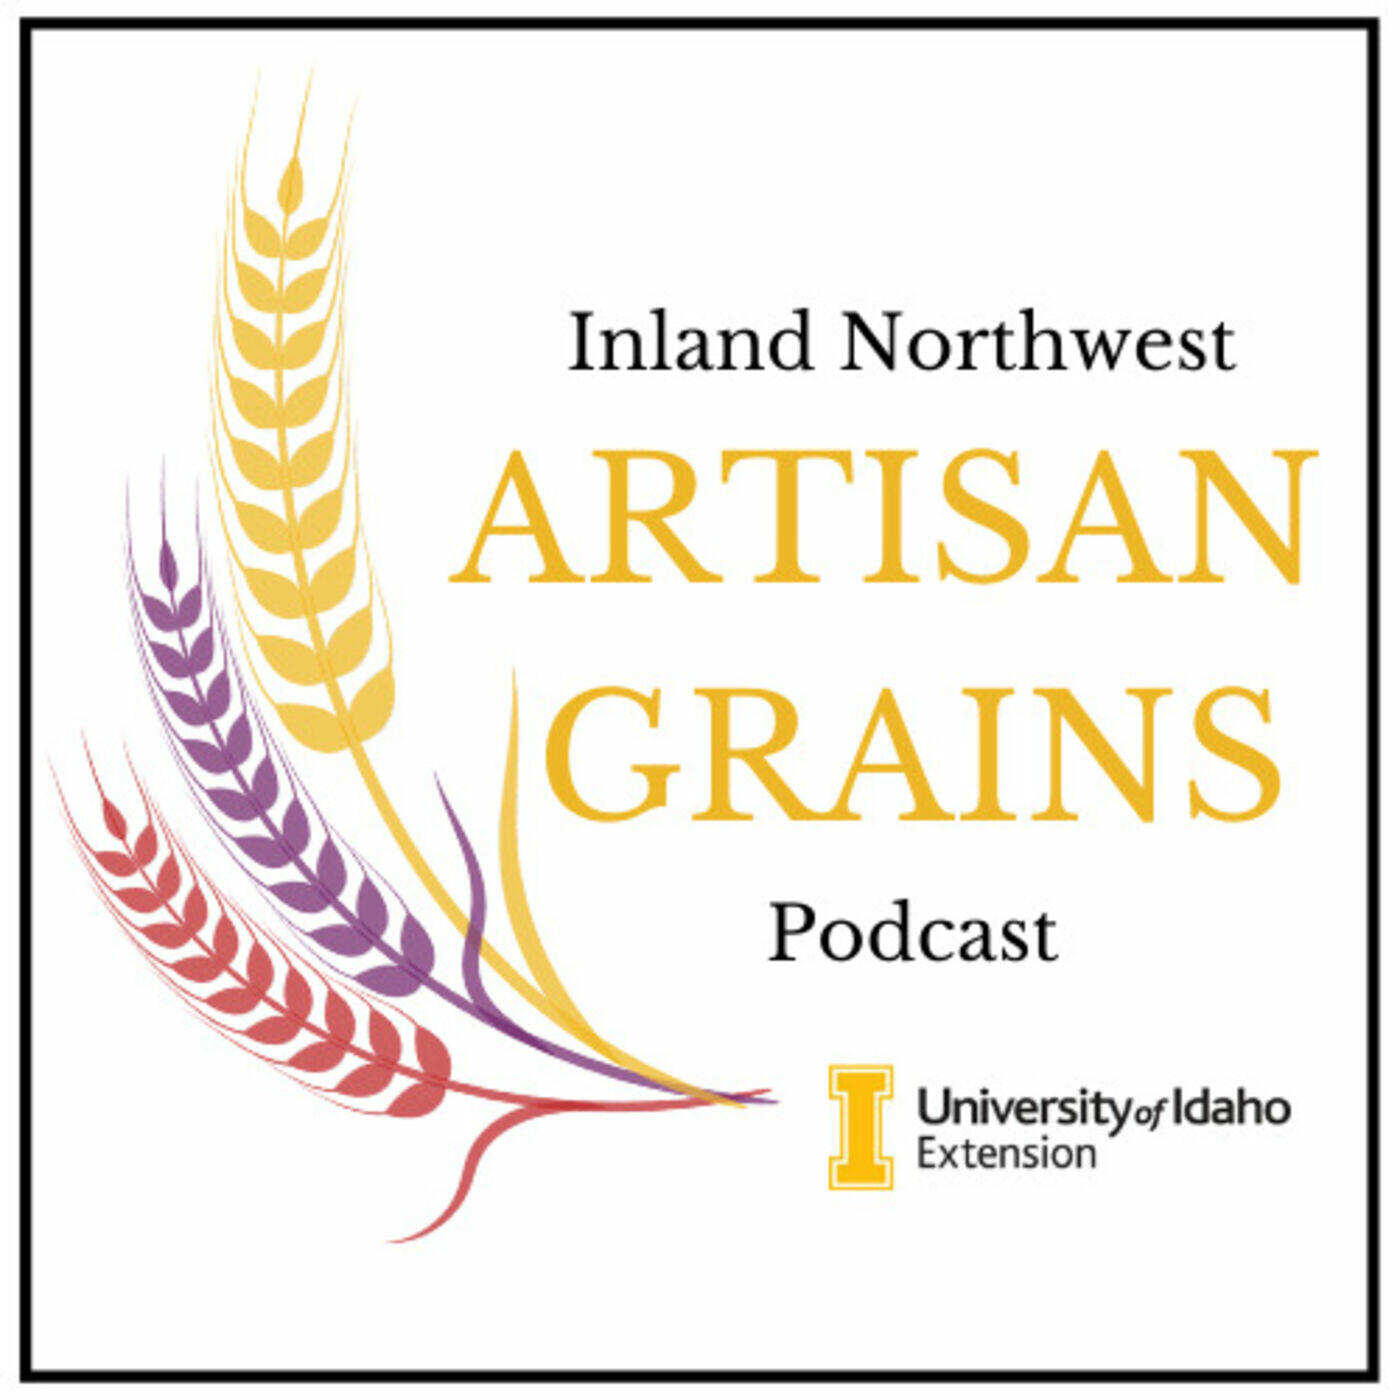 Inland Northwest Artisan Grains Podcast: Unpacking the Grain Shed